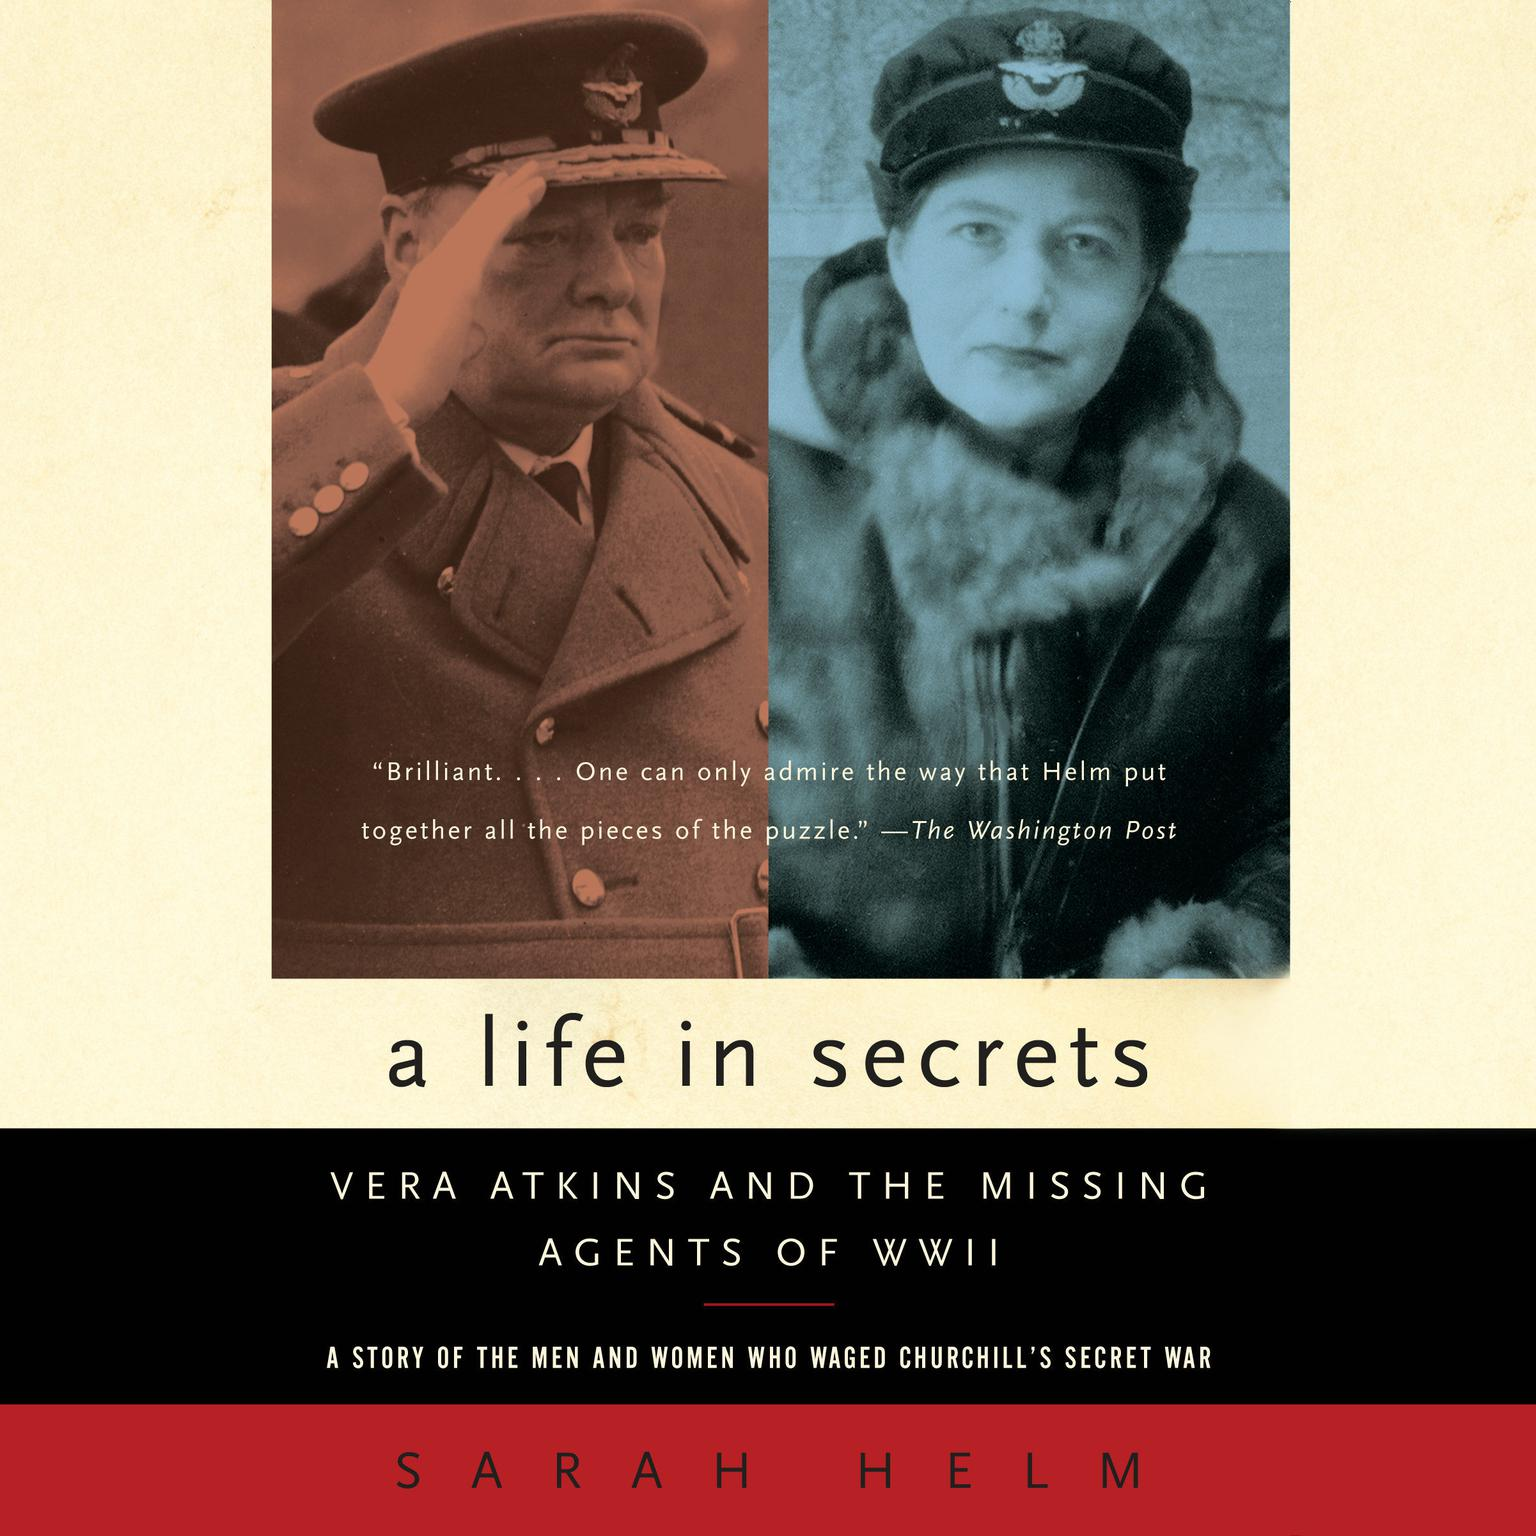 A Life in Secrets: Vera Atkins and the Missing Agents of WWII Audiobook, by